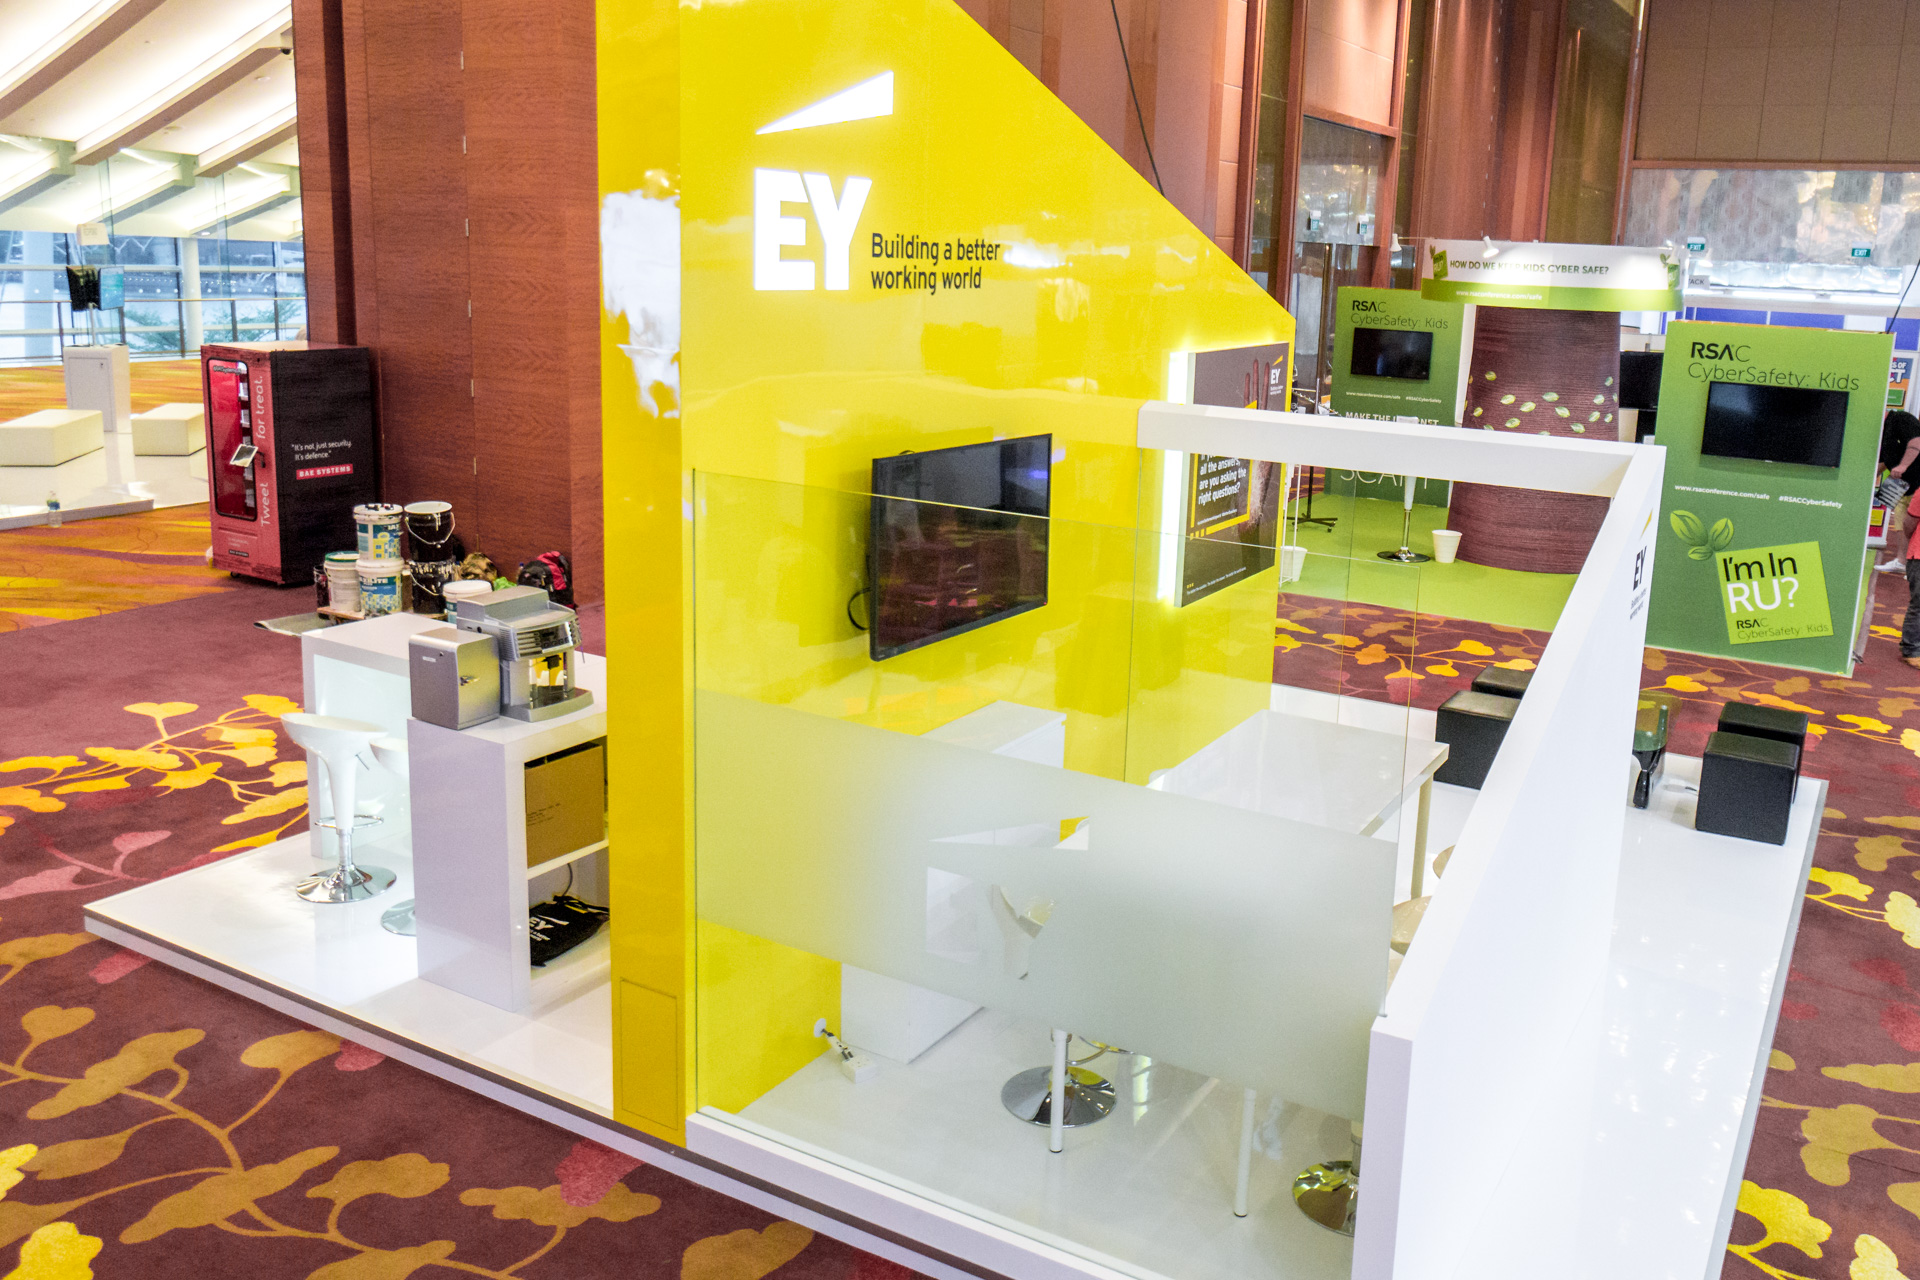 exhibition-stand-design-punktlandung-ey-booth-011